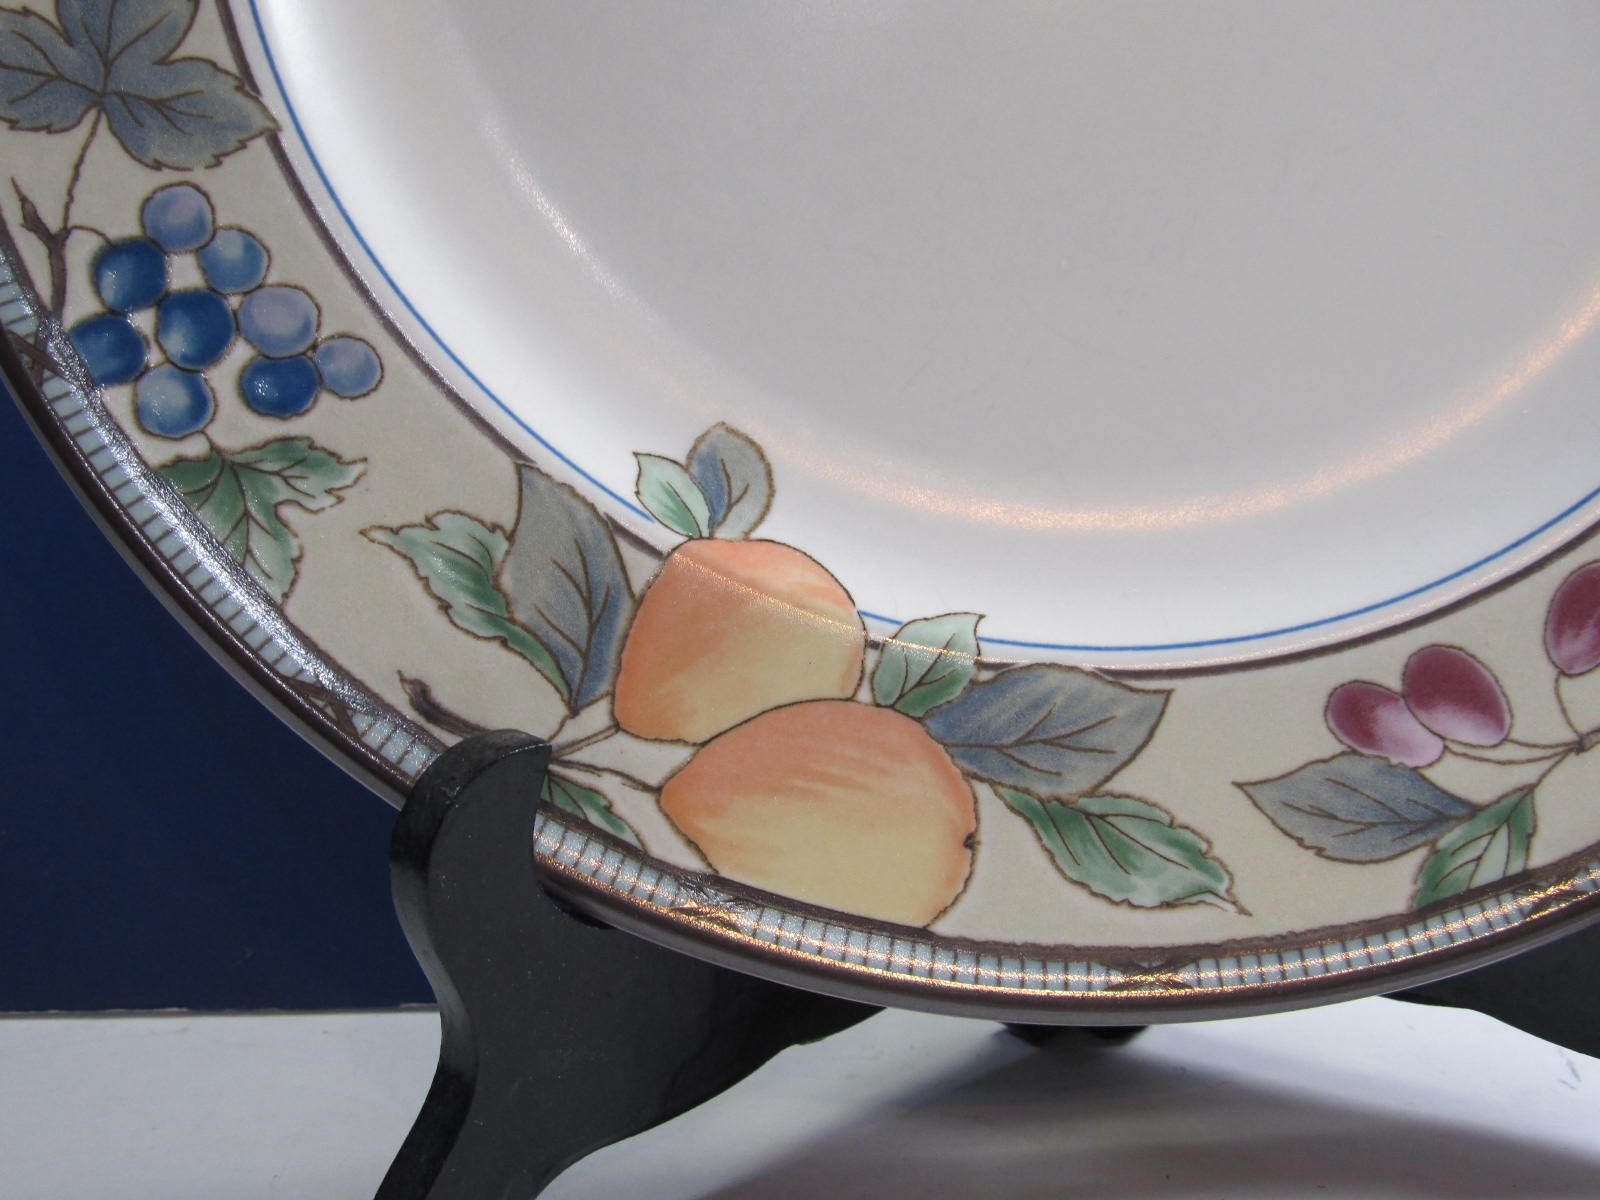 ... Mikasa Garden Harvest Dinner Plate/s 11.5-Inch multiples available ... & Mikasa Garden Harvest Dinner Plate/s and 50 similar items